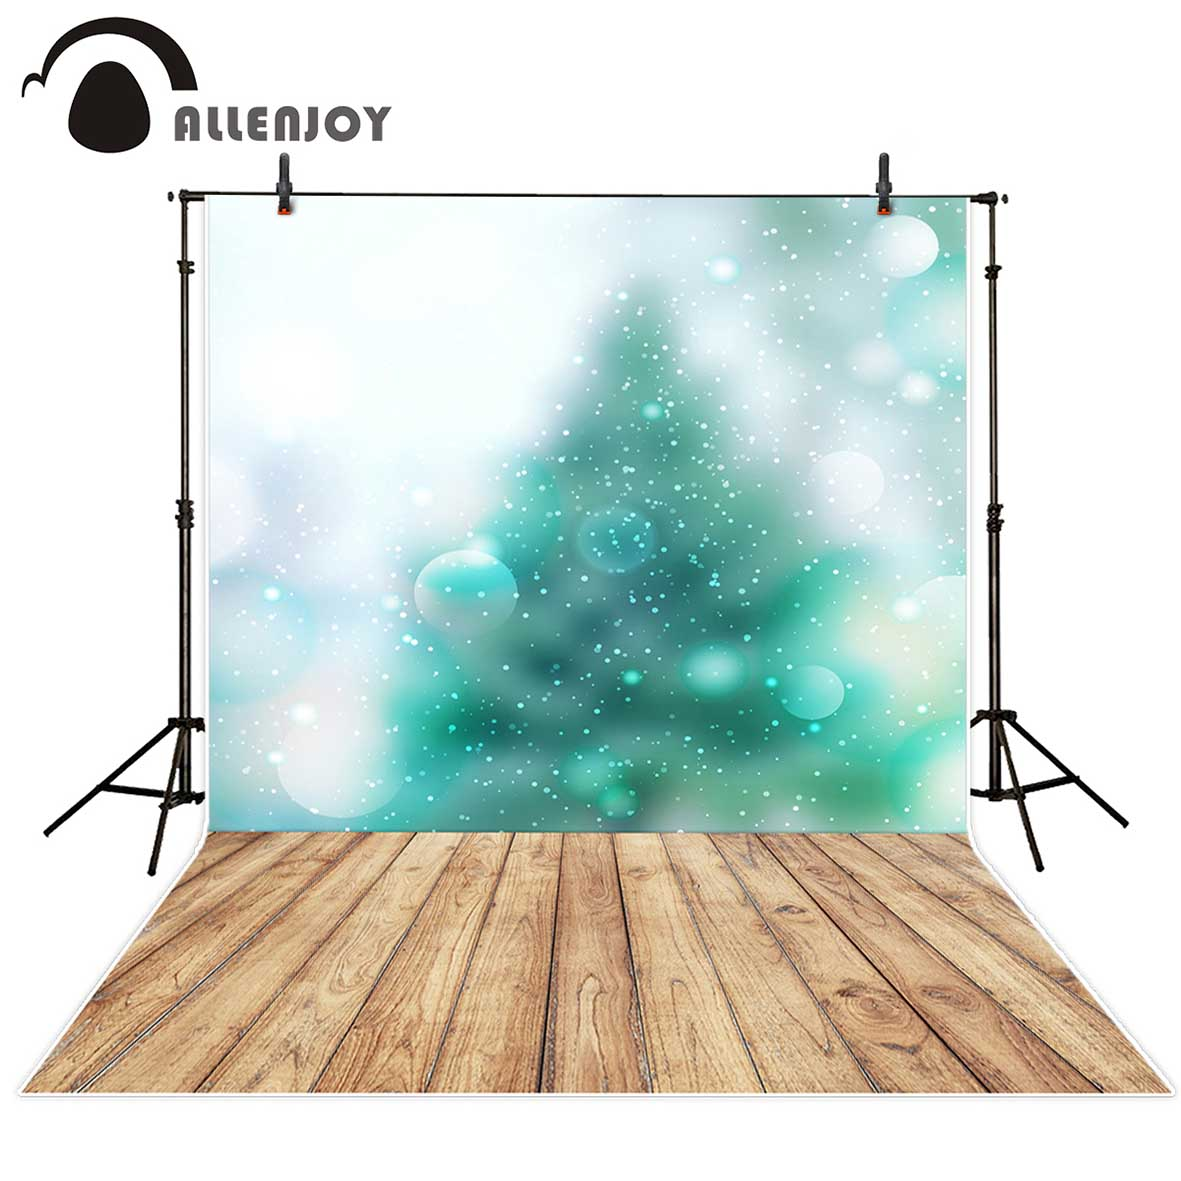 Allenjoy photography backdrops Green bokeh winter shiny wooden board Backgrounds for photographing for baby